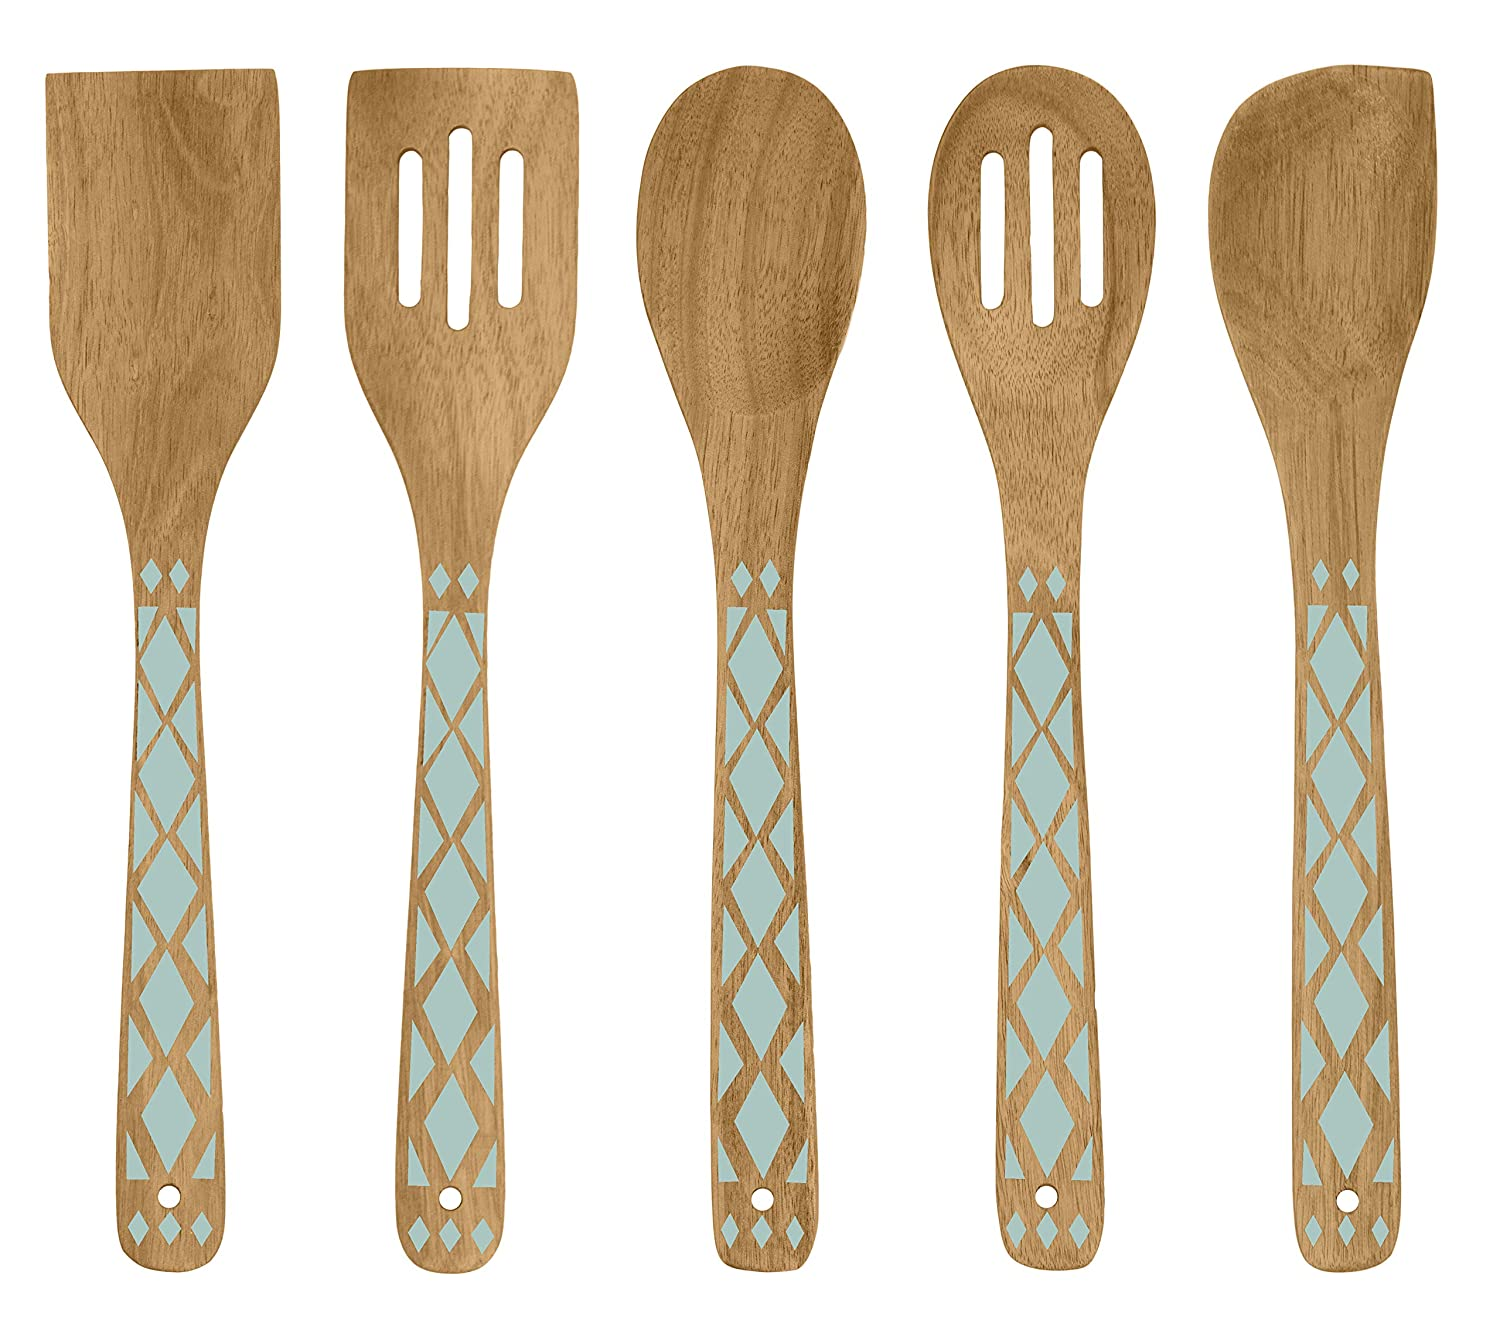 Country Kitchen 5 Piece Nonstick Utensil Set Acacia Wooden Kitchen Tools for Serving and Healthy Cooking with Mint Green Inlay Design